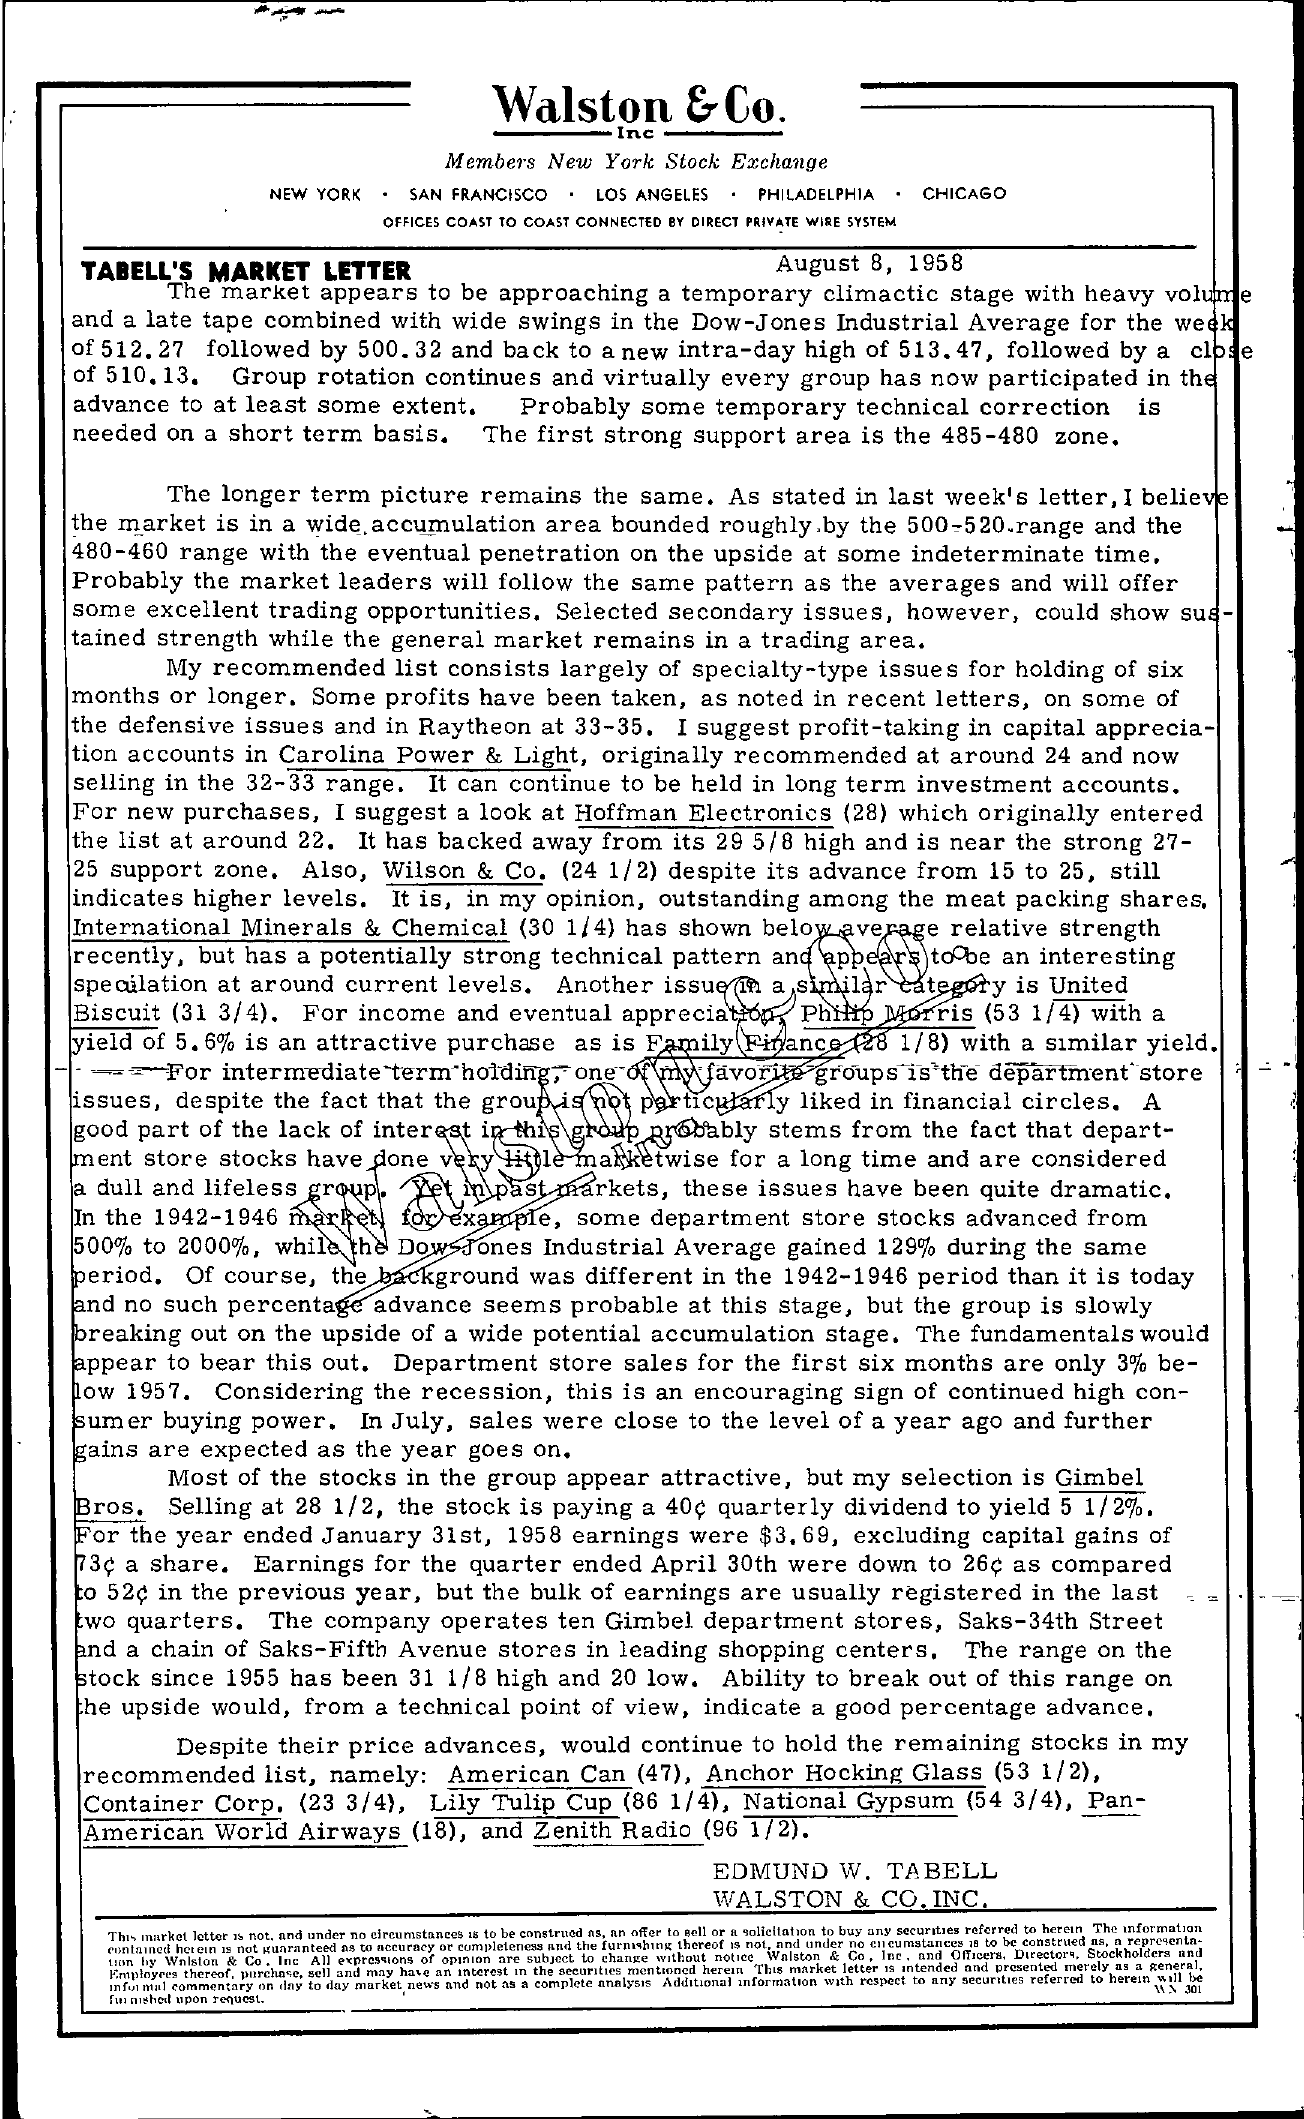 Tabell's Market Letter - August 08, 1958